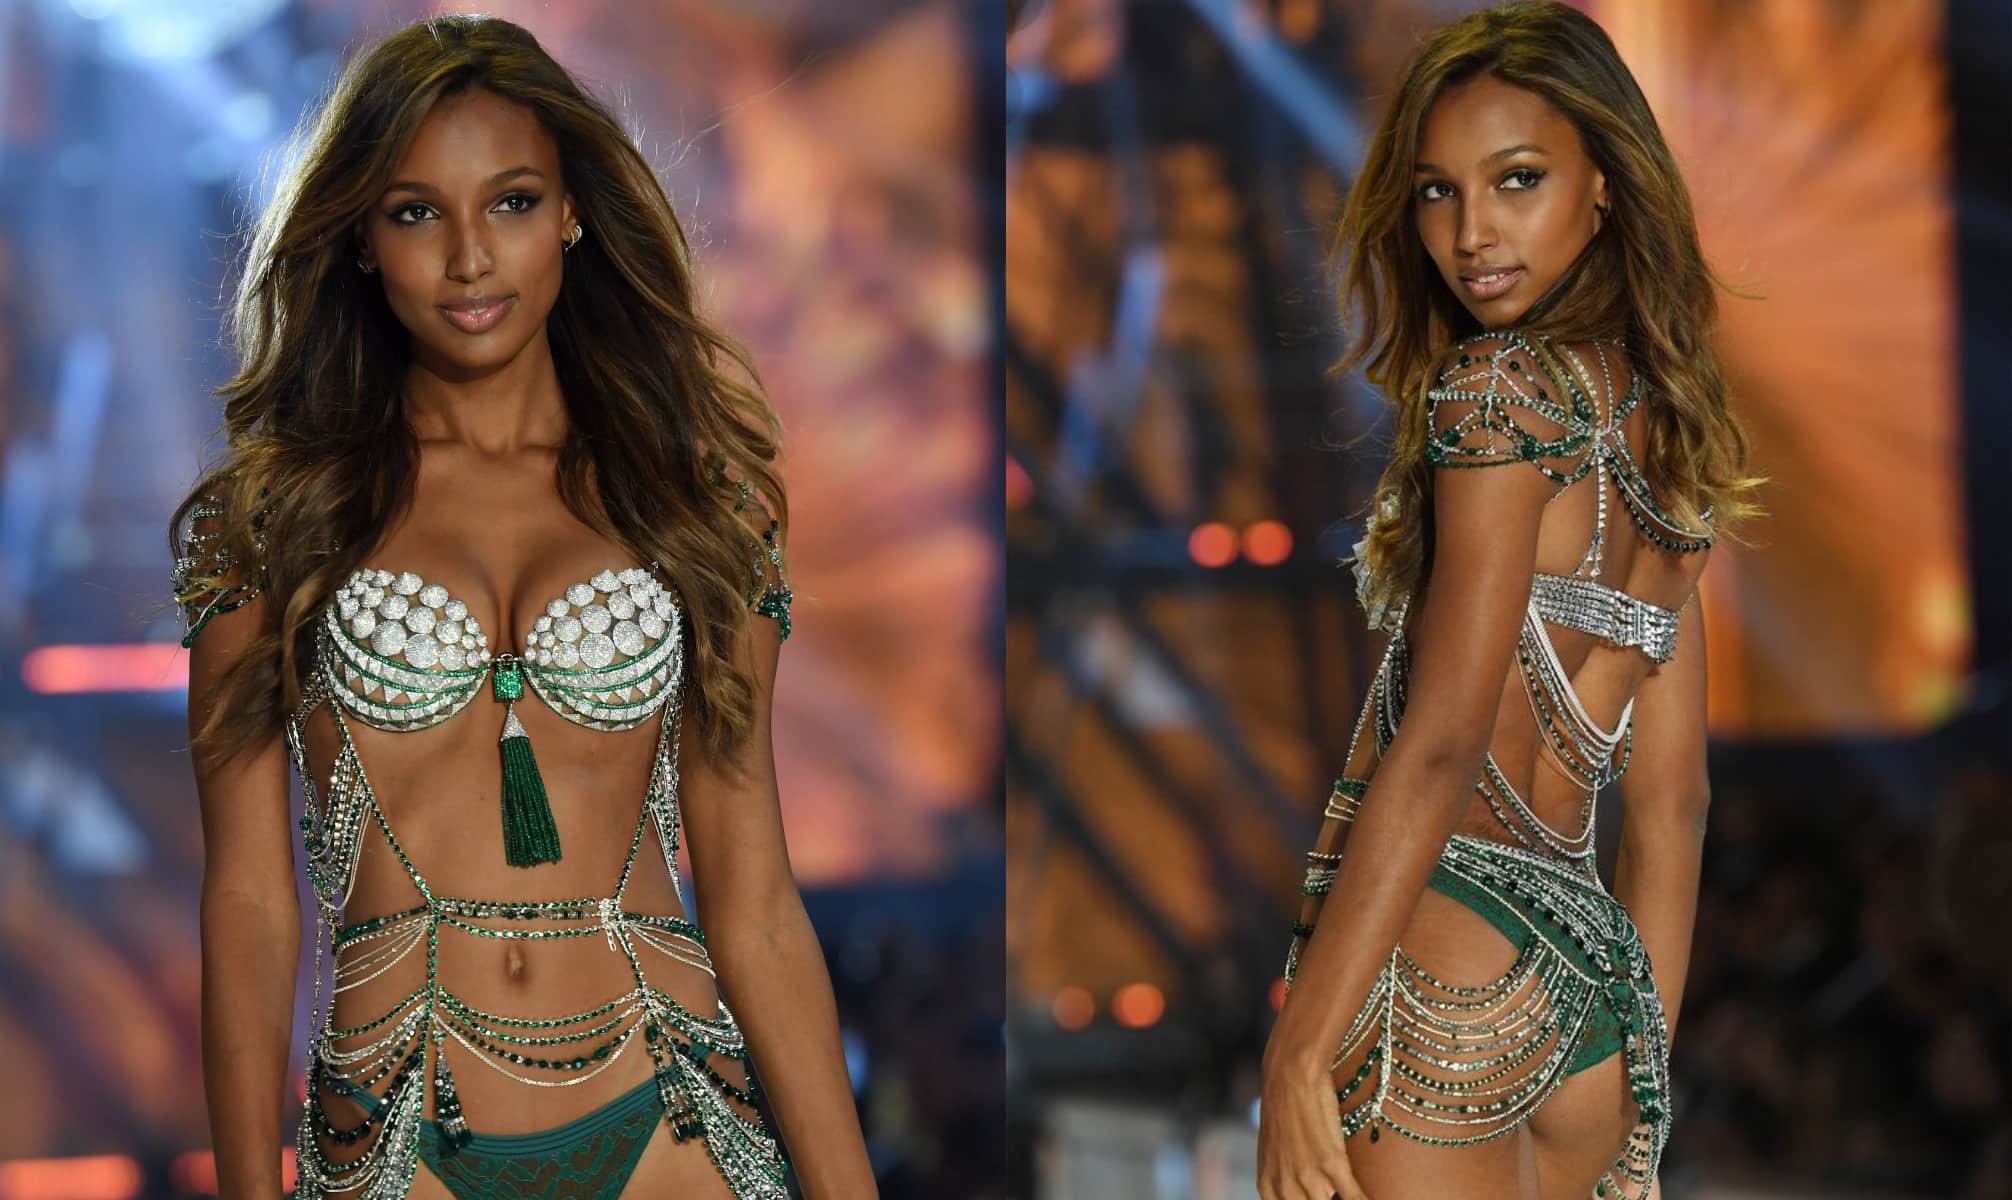 Jasmine Tookes Fantasy Bra for Victoria's Secret